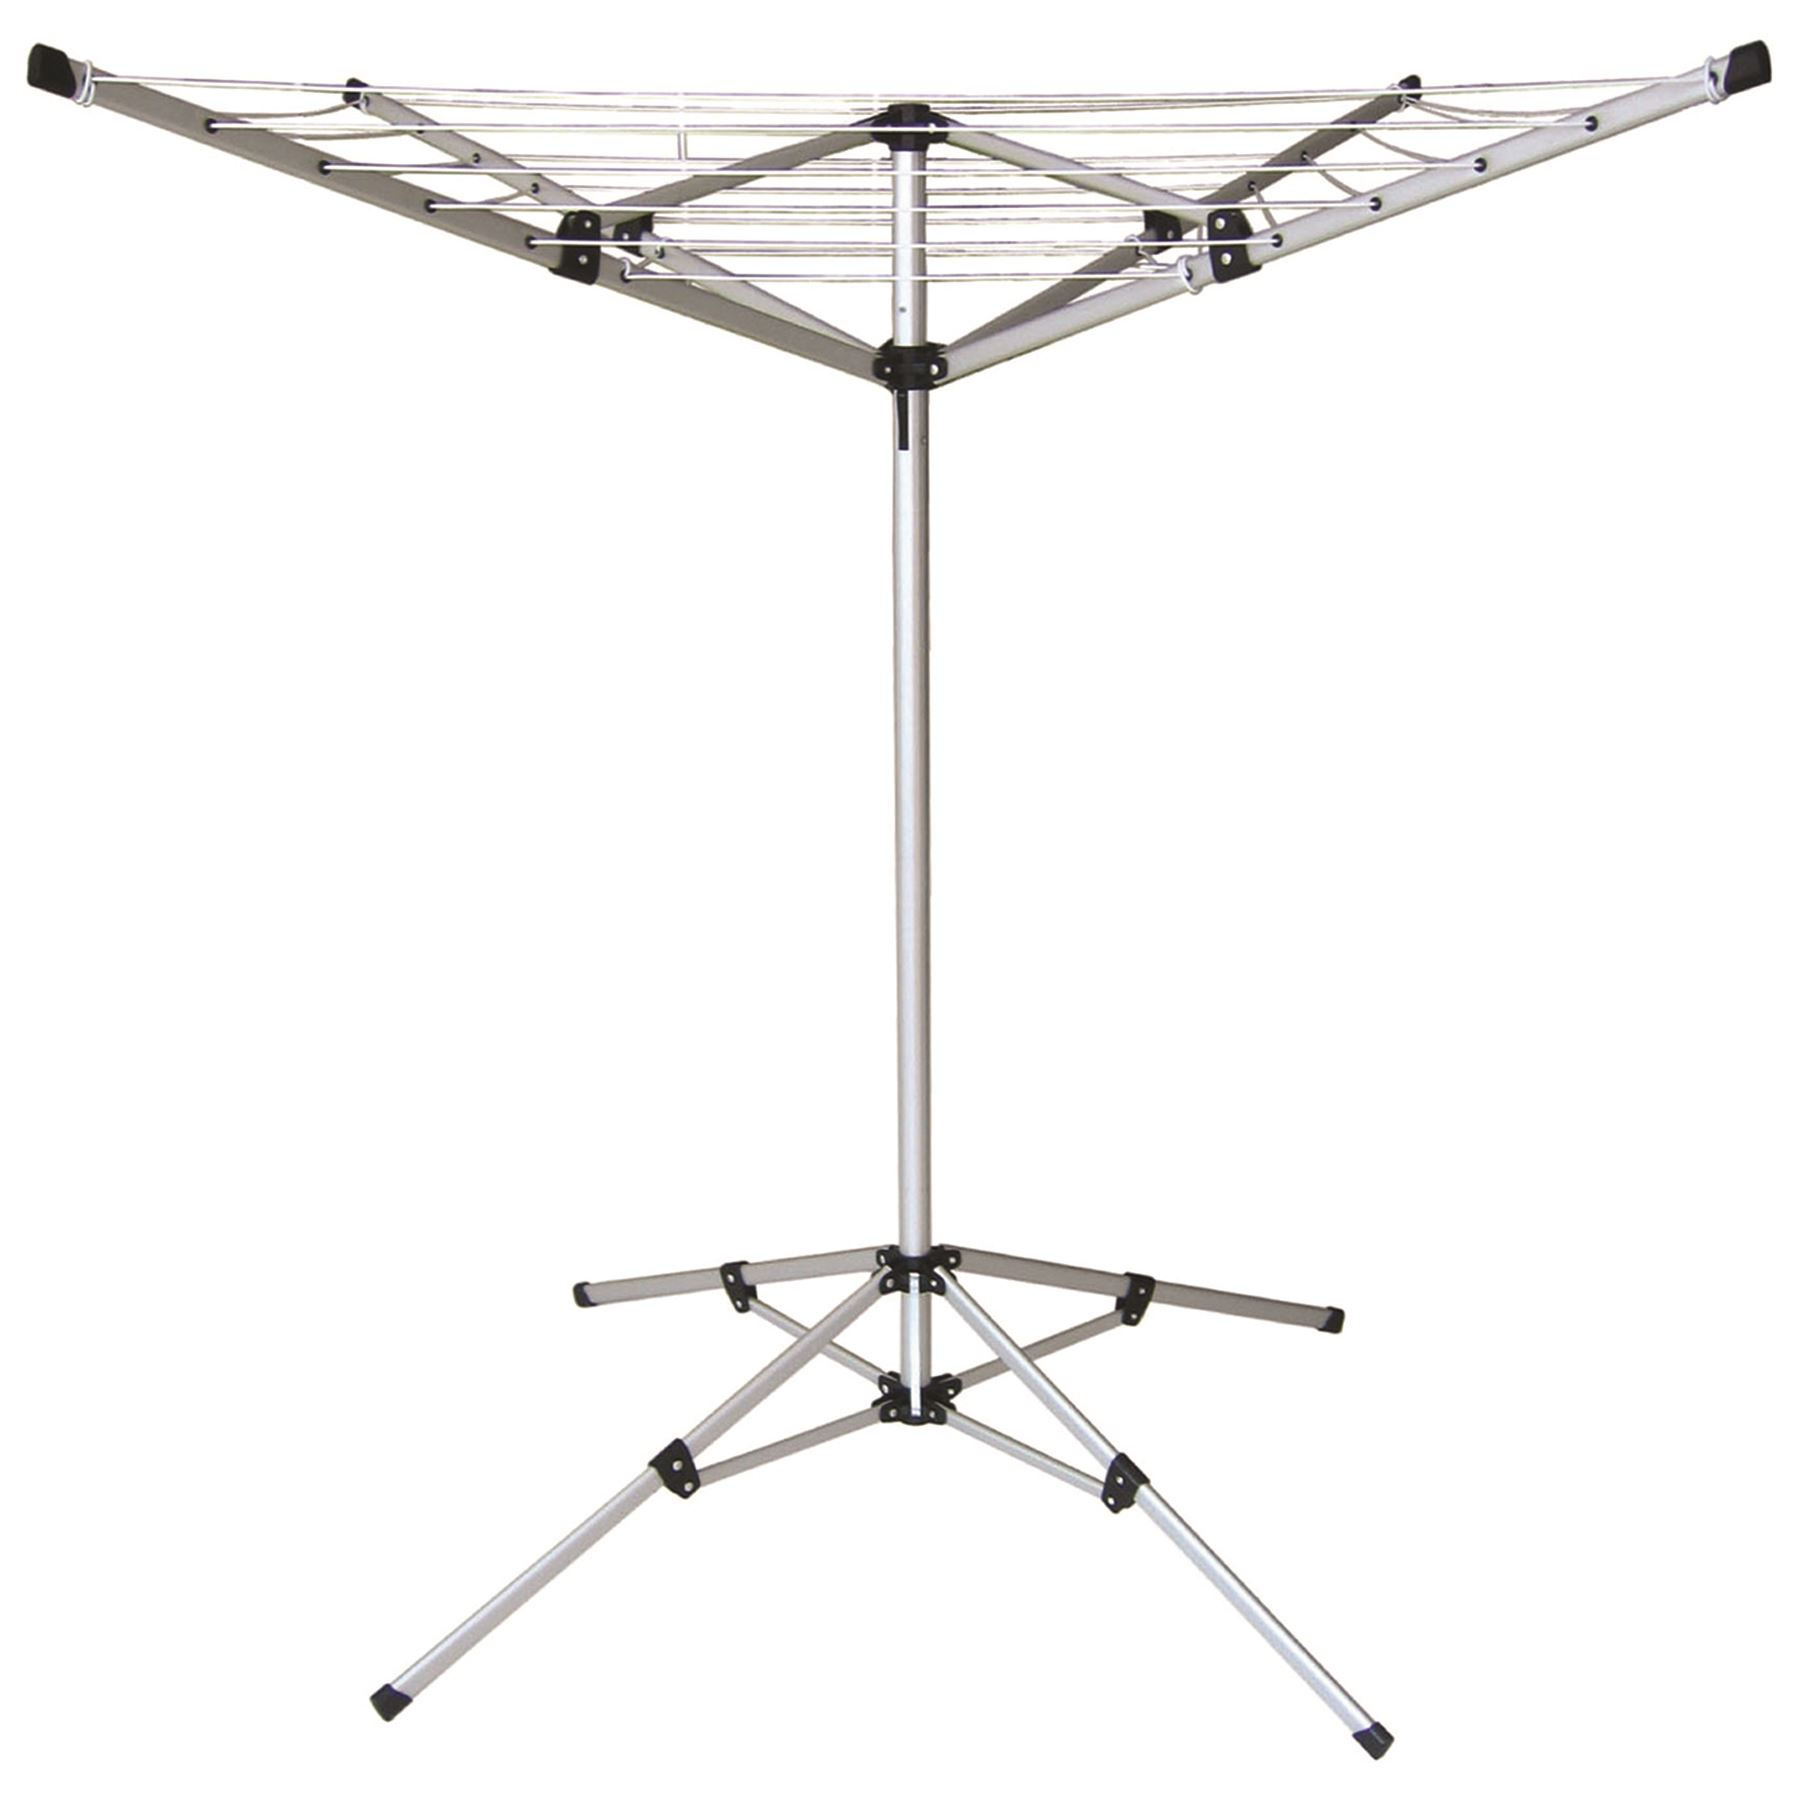 4 Arm Portable Aluminium Rotary Airer Clothes Line Camping